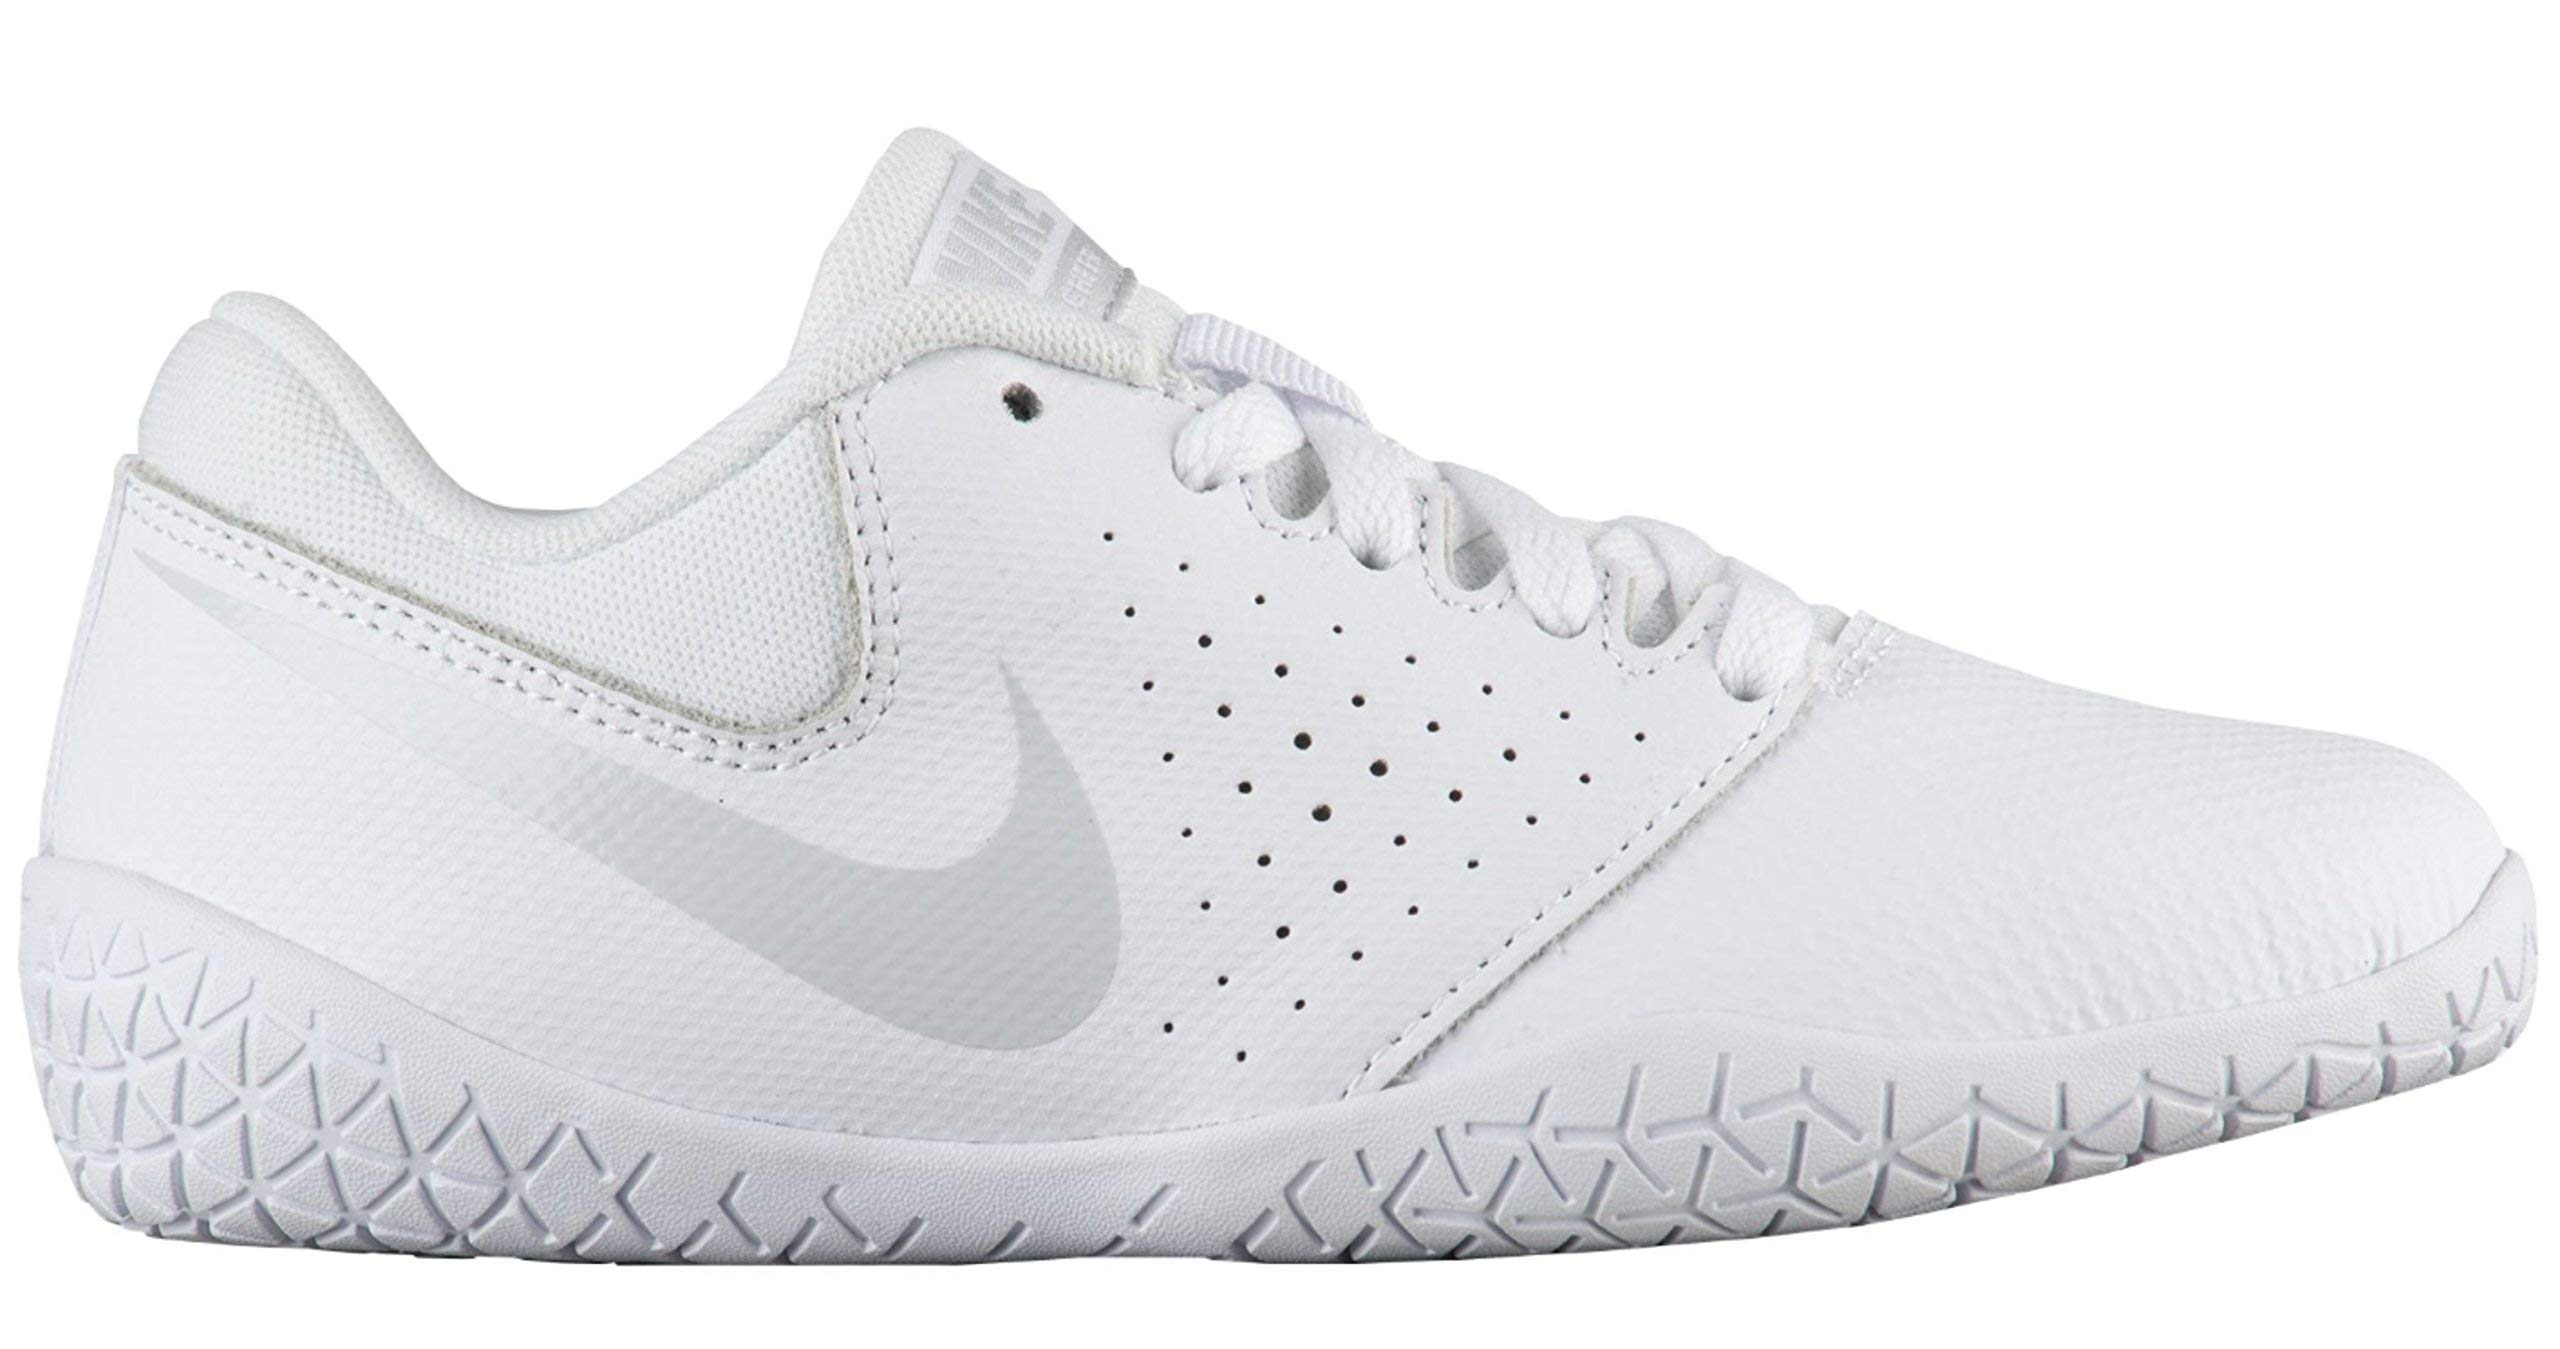 new products for hot-selling speical offer Nike Girl's Youth Cheer Sideline IV Cheerleading Shoes (12 M US Little Kid,  White/Pure Platinum/White)